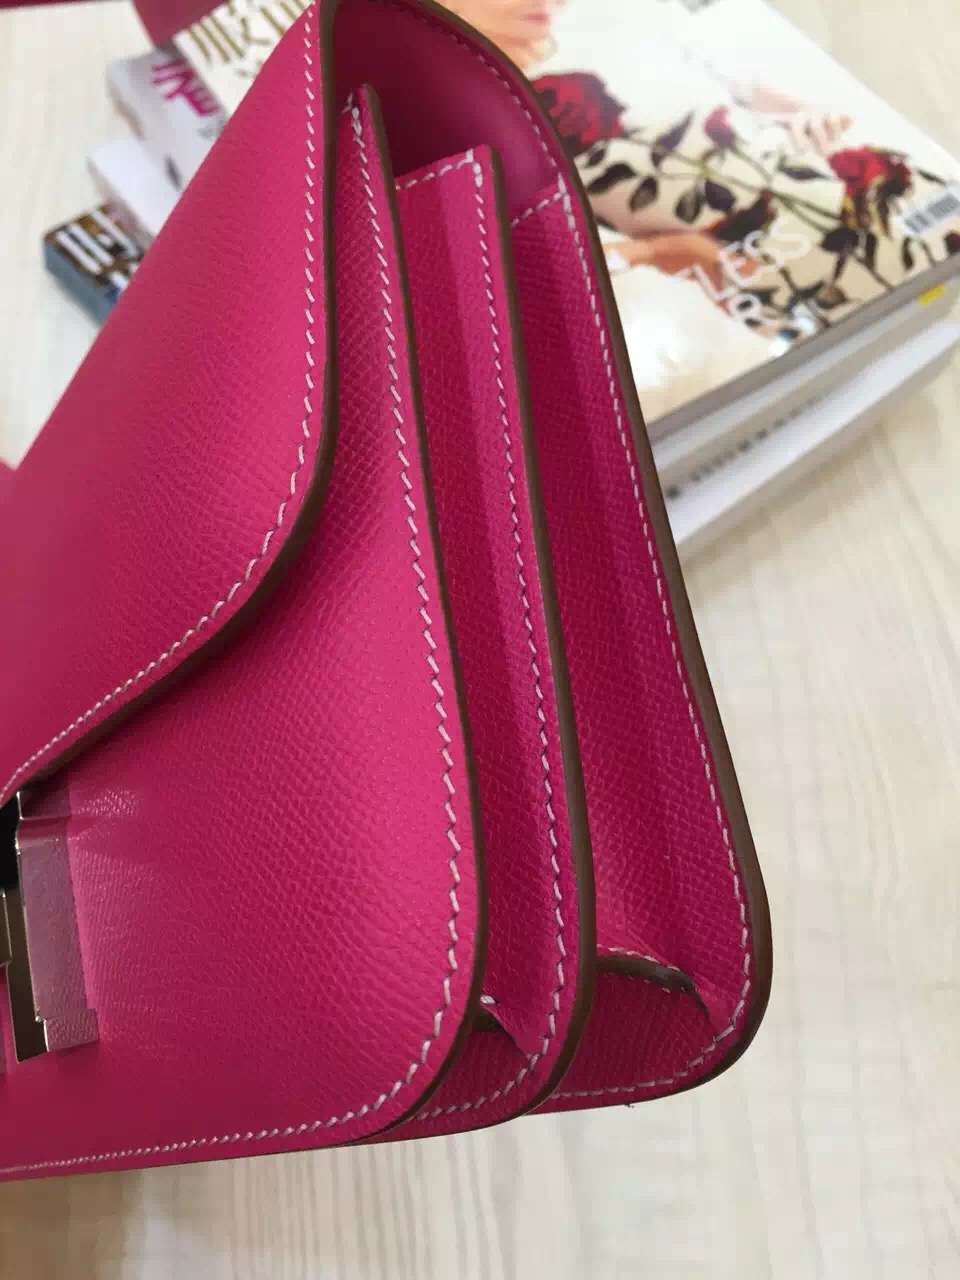 High Quality Hermes Constance Bag 24CM Candy Pink Epsom Leather Women's Shoulder Bag